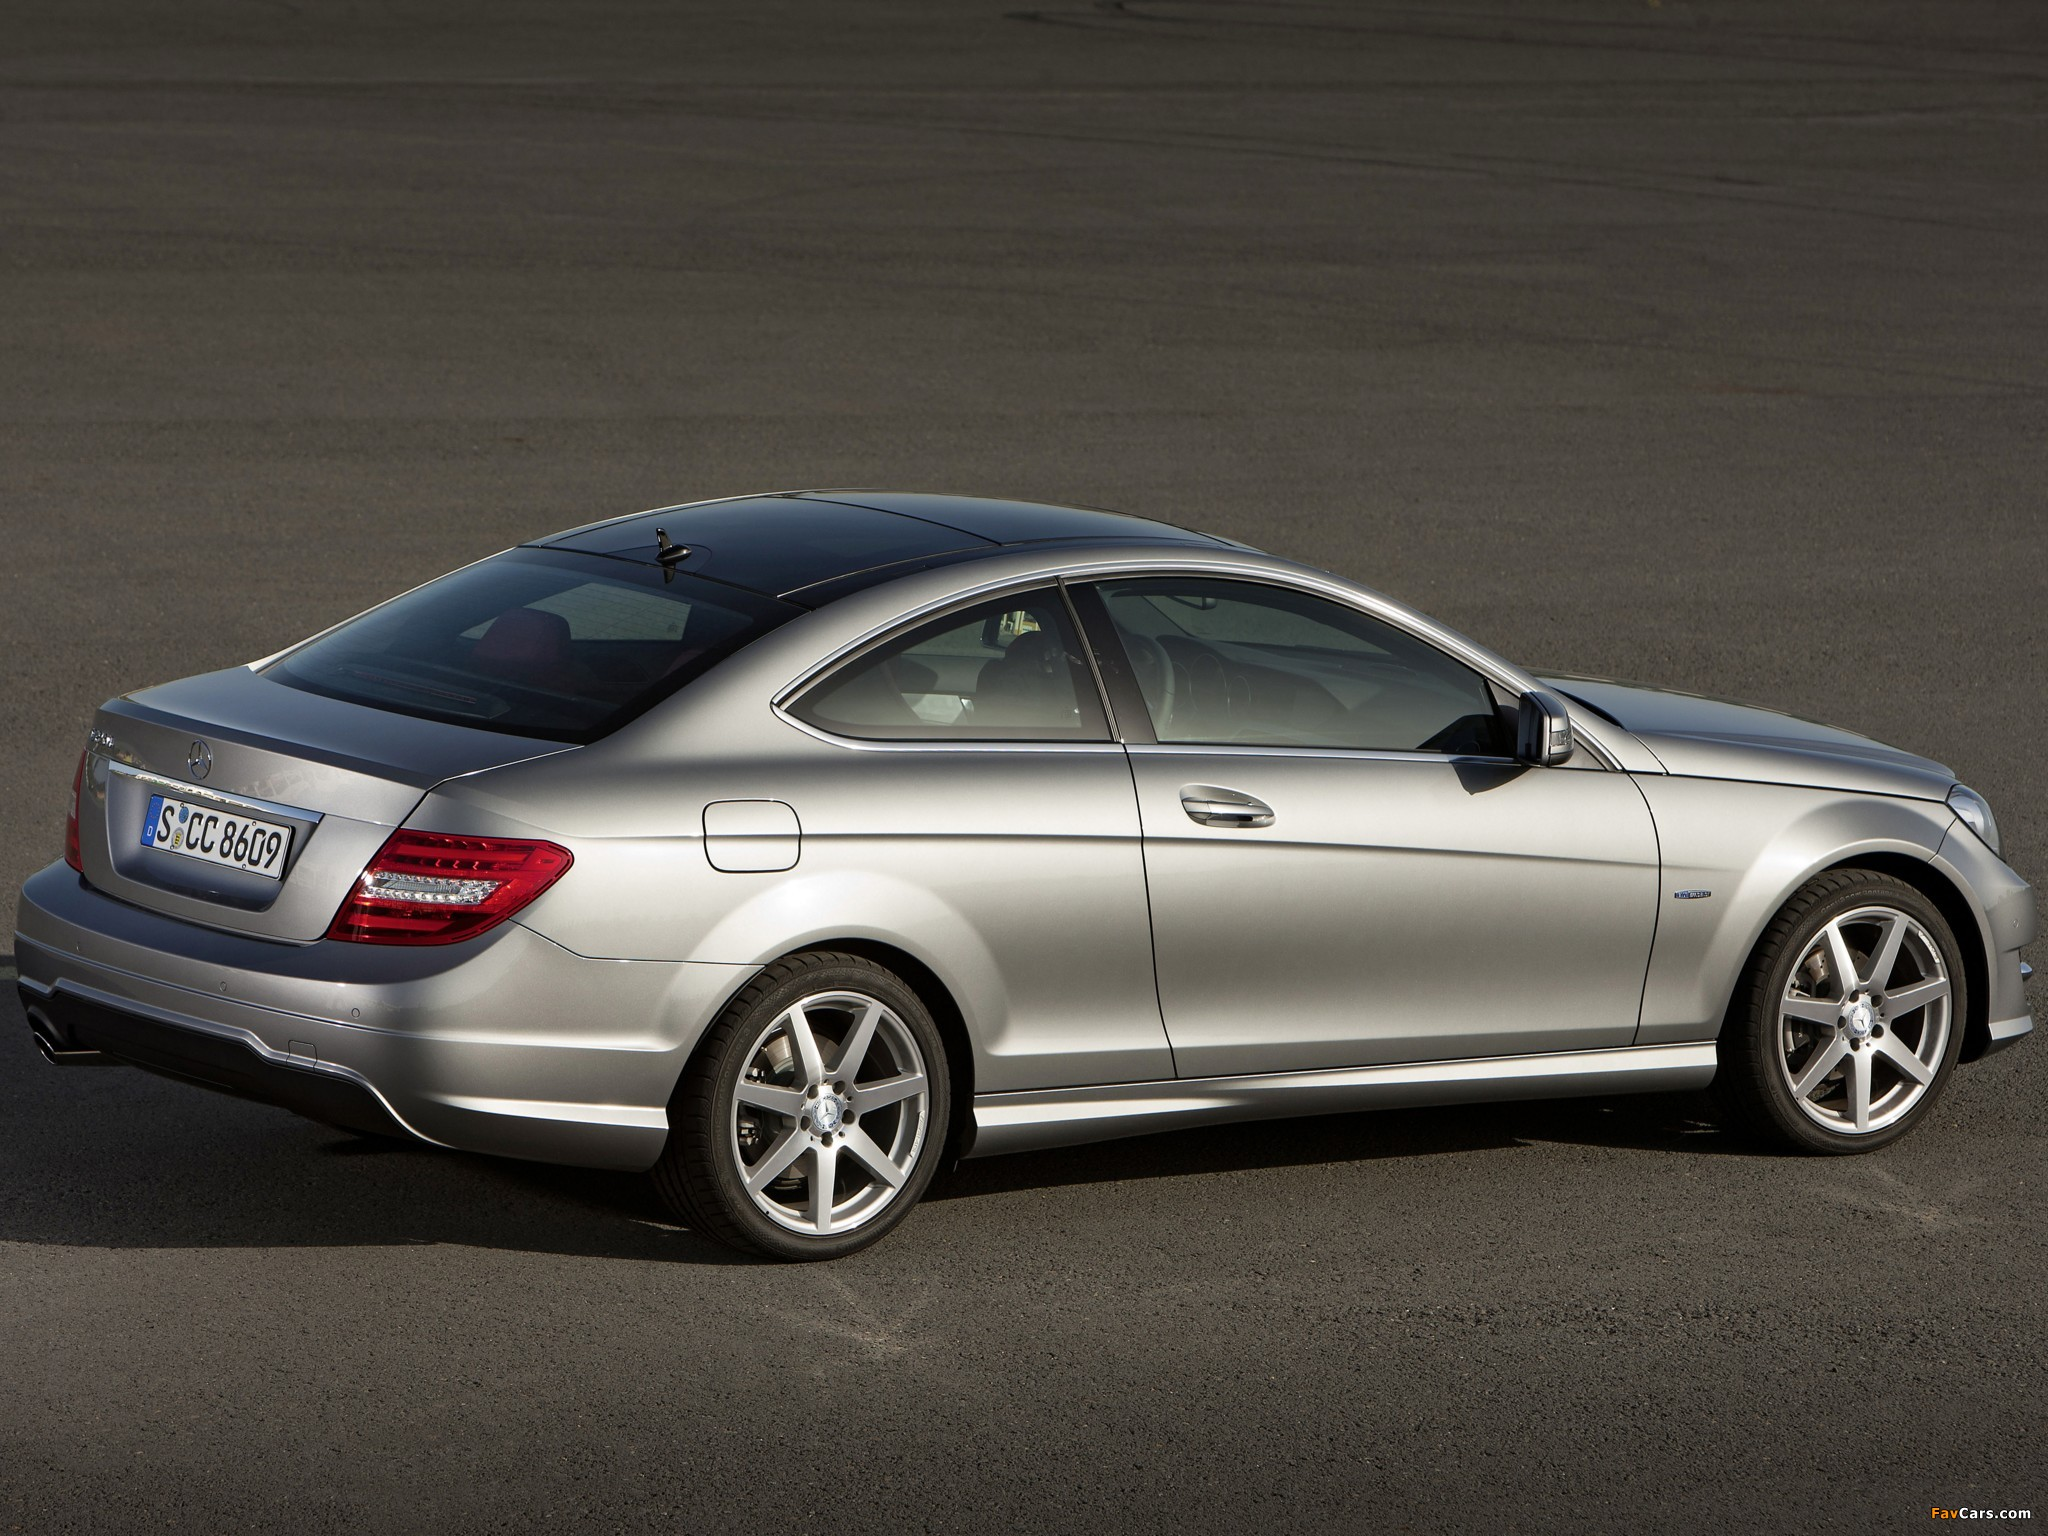 Mercedes-Benz C 250 Coupe (C204) 2011 pictures (2048 x 1536)